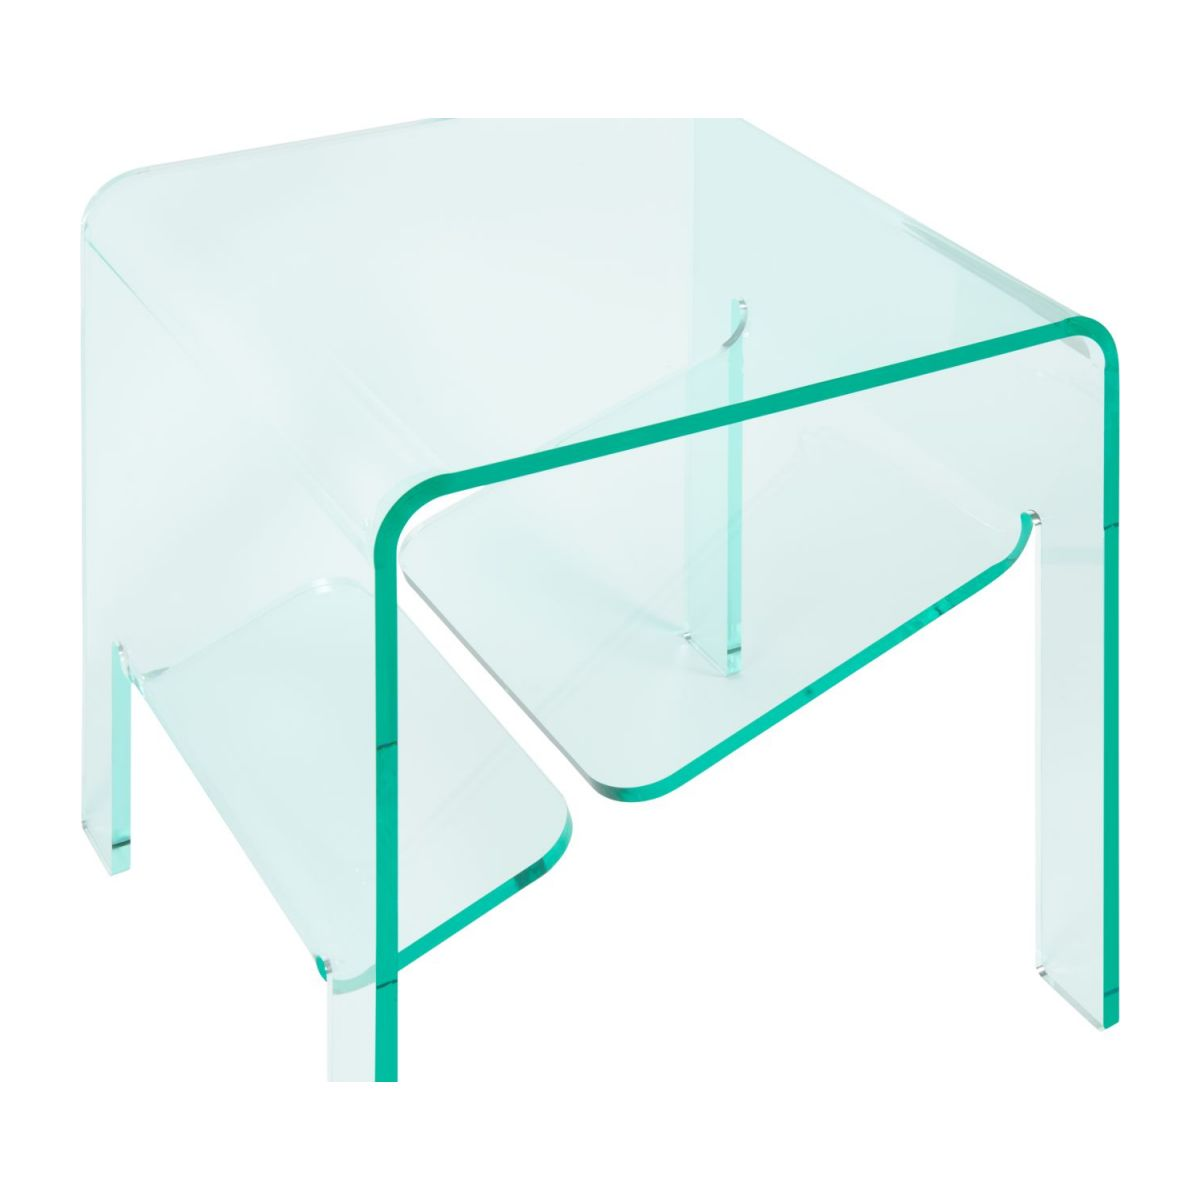 Table d'appoint en acrylique transparente n°6